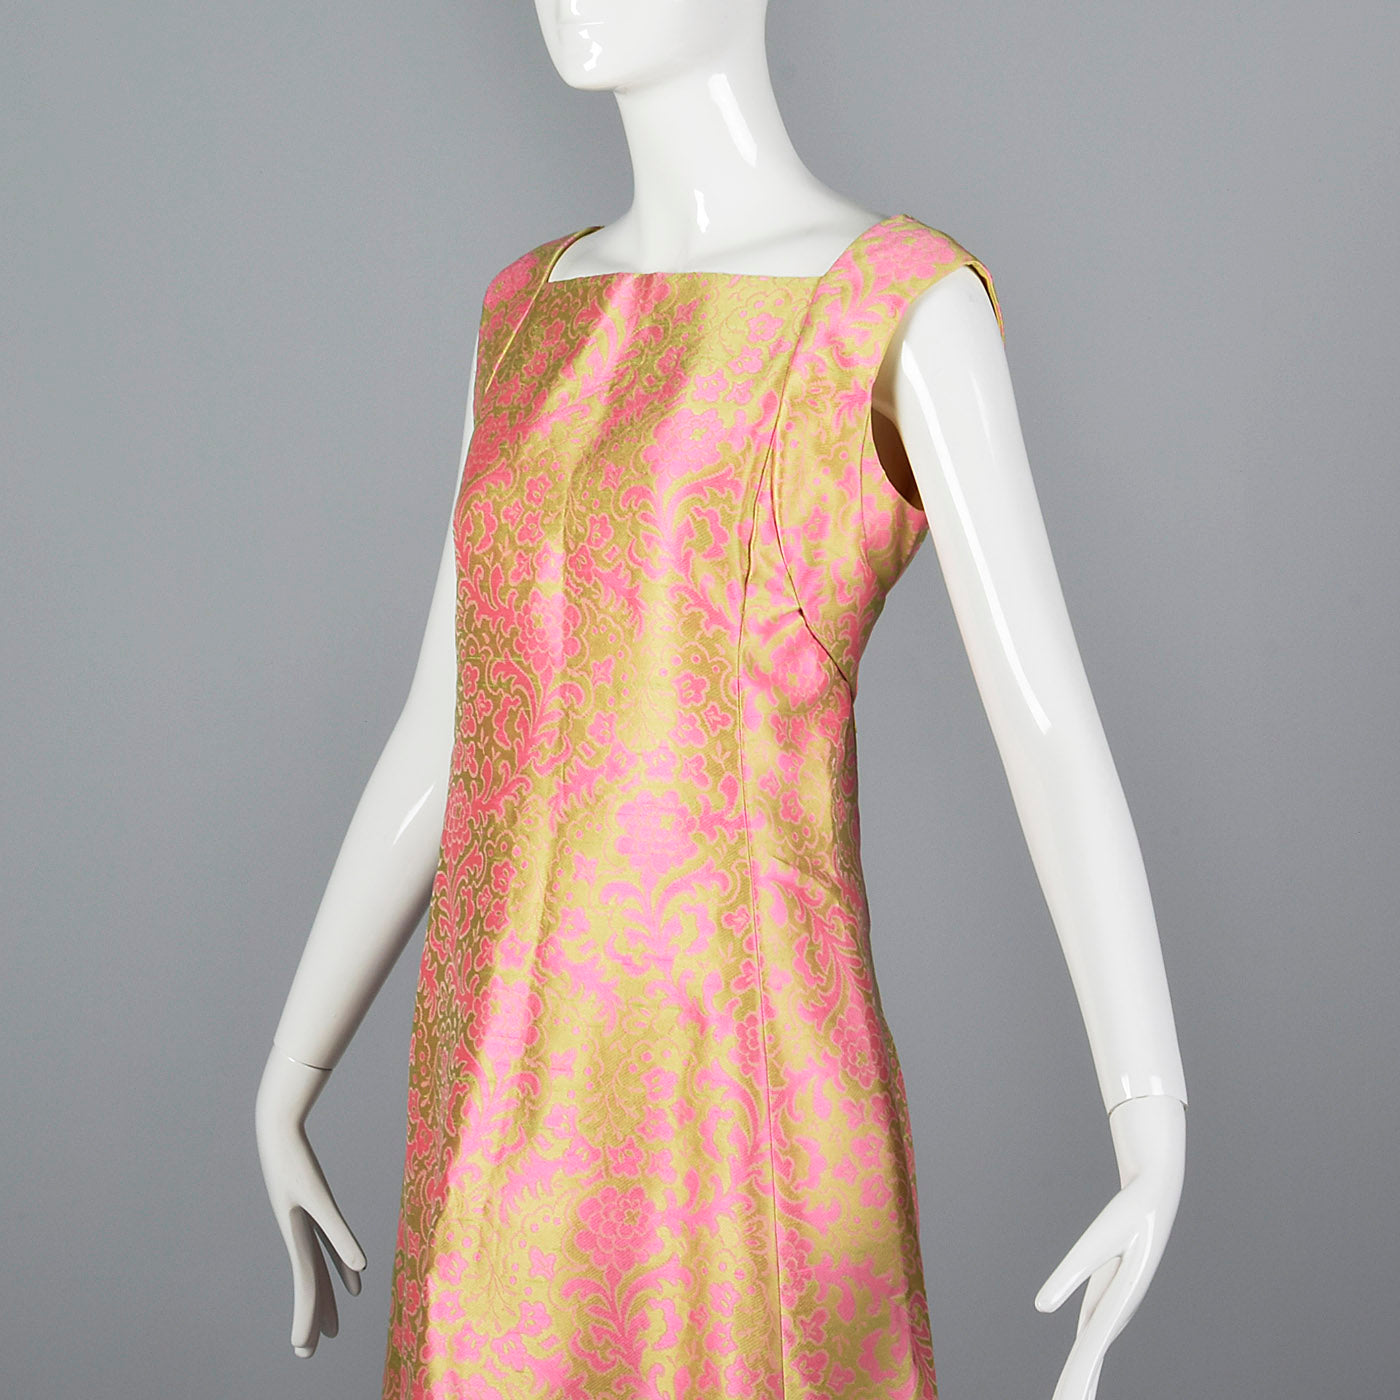 1960s Malcolm Starr Sleeveless Maxi Dress in Pink and Chartreuse Psychedelic Brocade